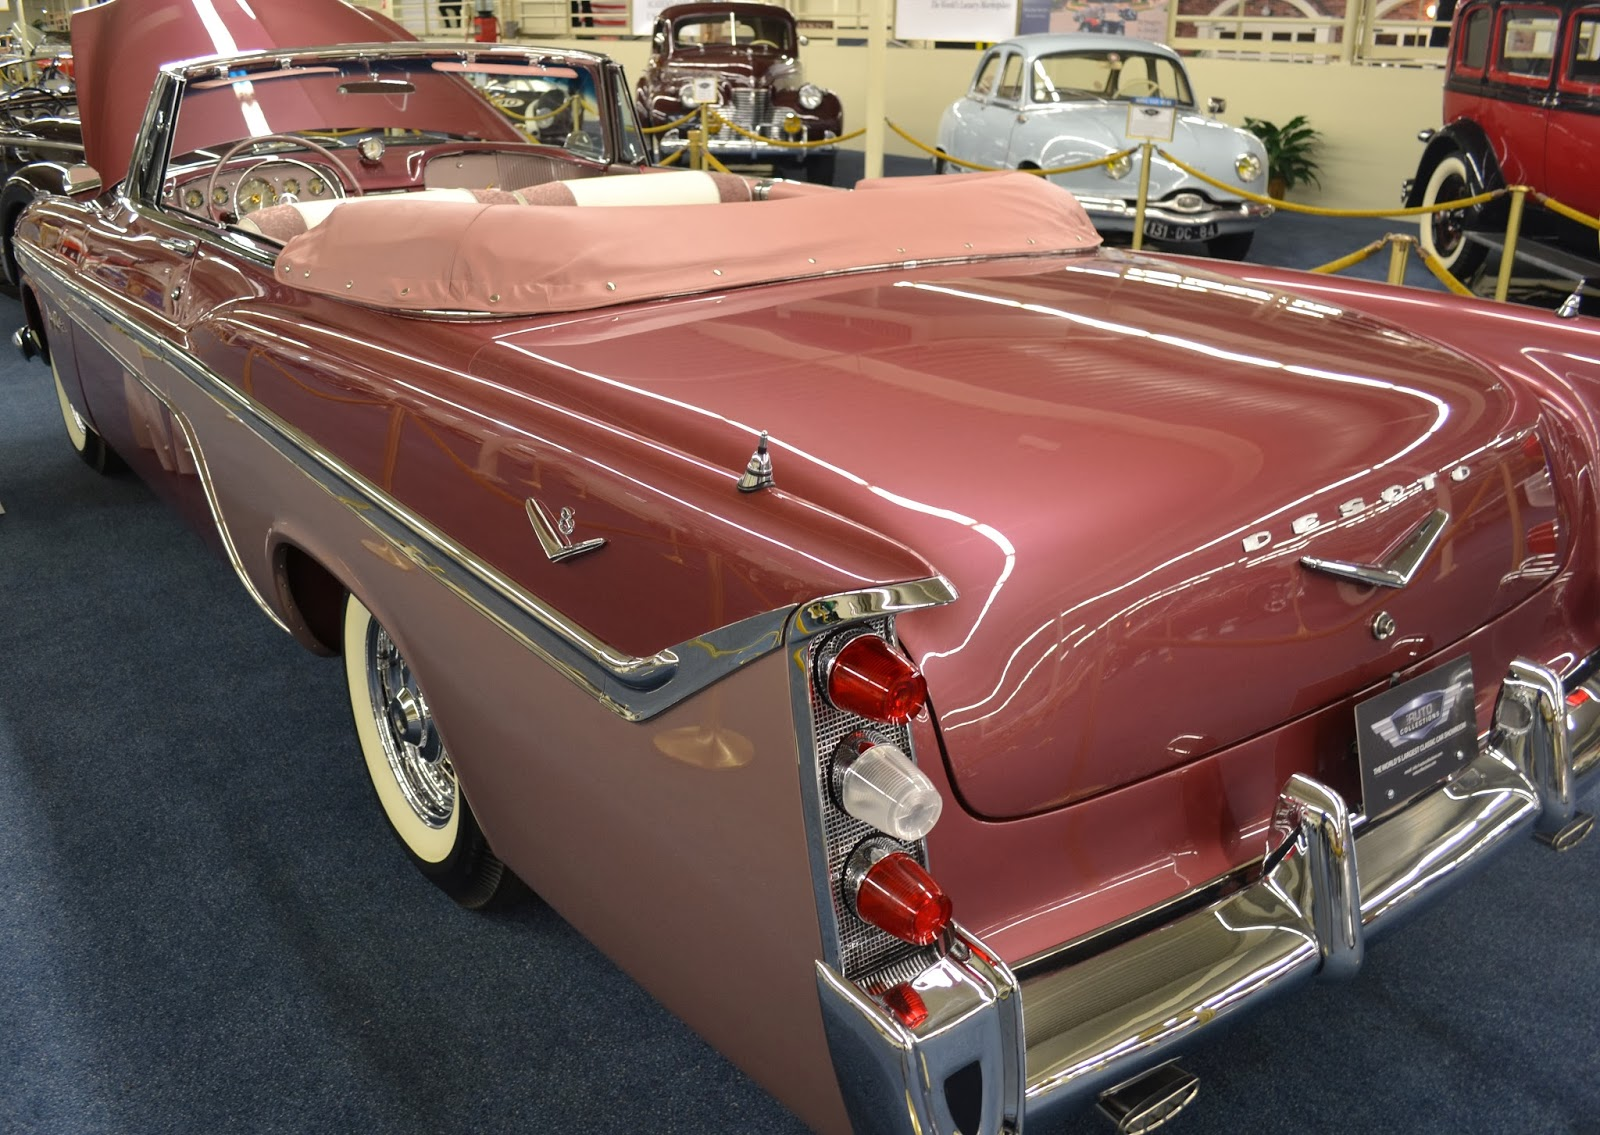 1956 desoto fireflight convertible interior includes a - Rare Options Include The Desoto Matic Benrus Self Winding Steering Wheel Mounted Clock And The Coolest Highway Hi Fi Car Phonograph